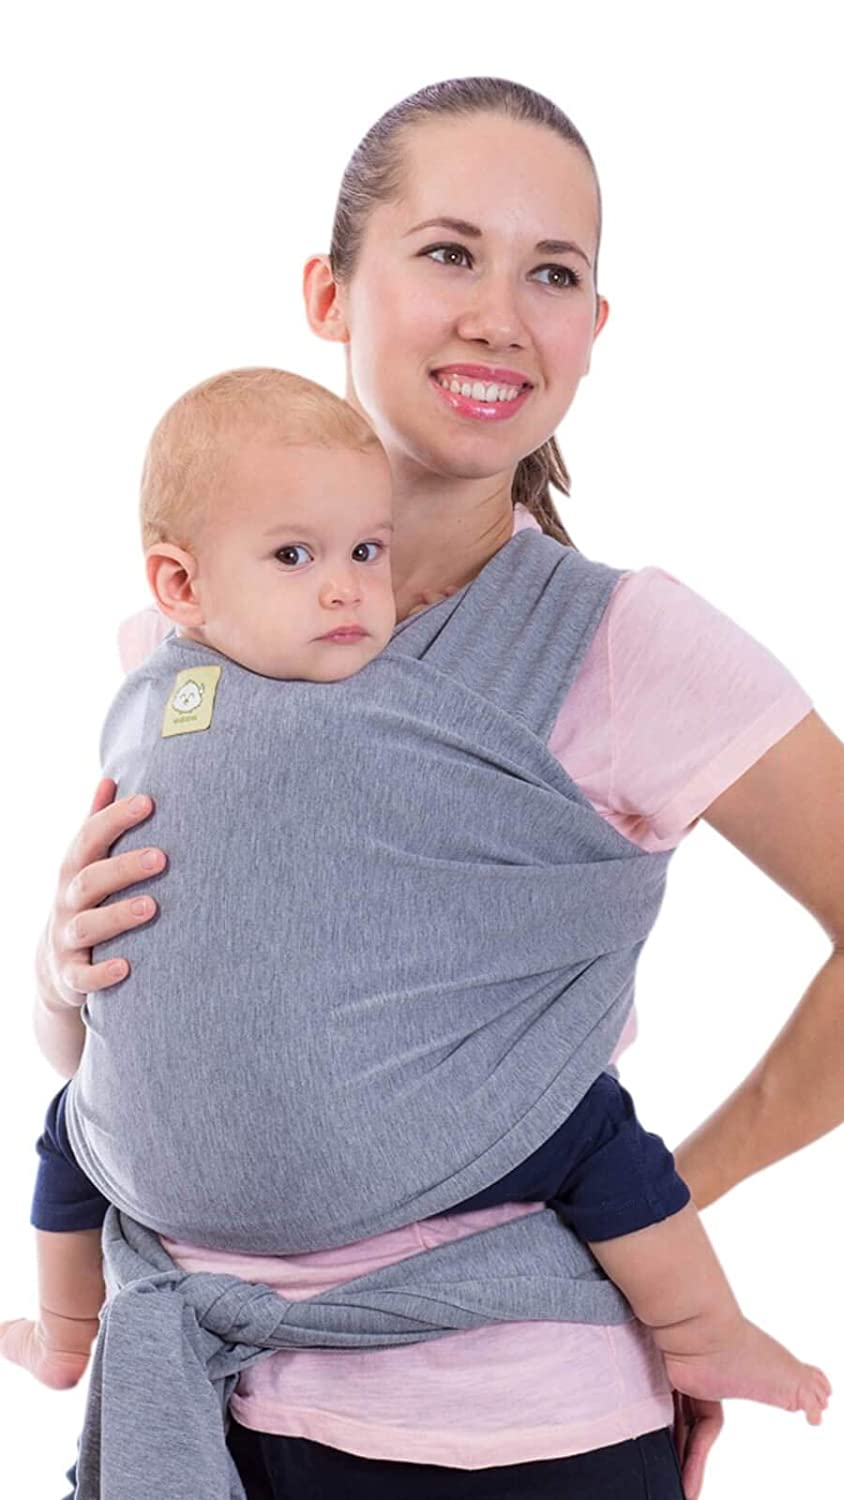 Baby Wrap Carrier by KeaBabies - All-in-1 Stretchy Baby Wraps - Baby Sling - Infant Carrier - Babys Wrap - Hands Free Babies Carrier Wraps | Great Baby Shower Gift (Gray) ClassicGray